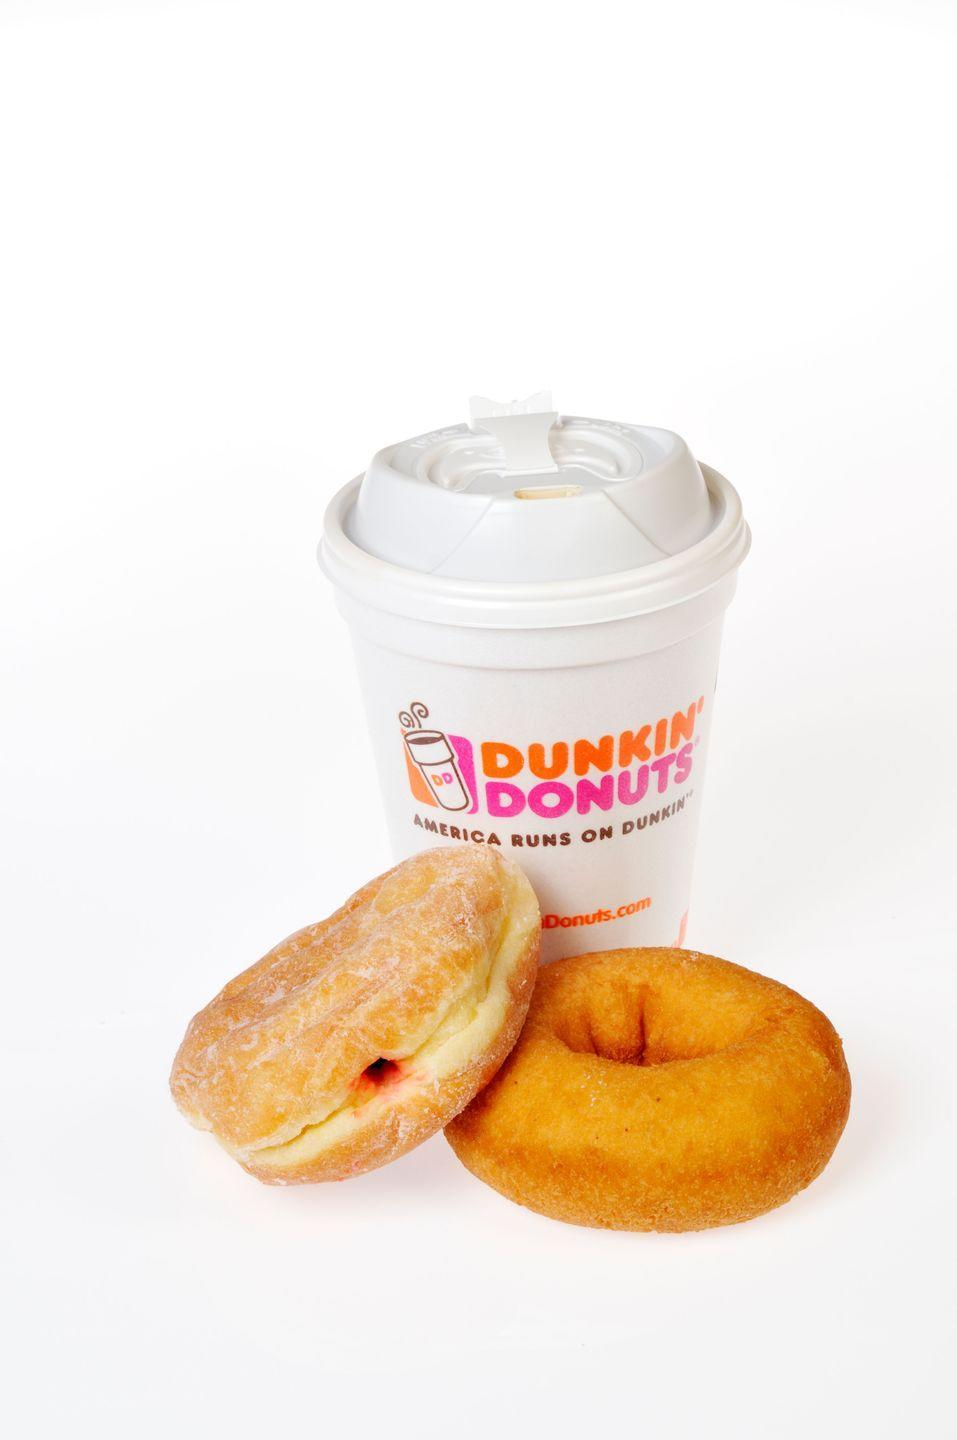 <p>I mean, Dunkin' still makes a mean donut to this day. But back in 1951, a year after the company's inception, everyone was snacking on those frosted doughy delights when the munchies hit.</p>